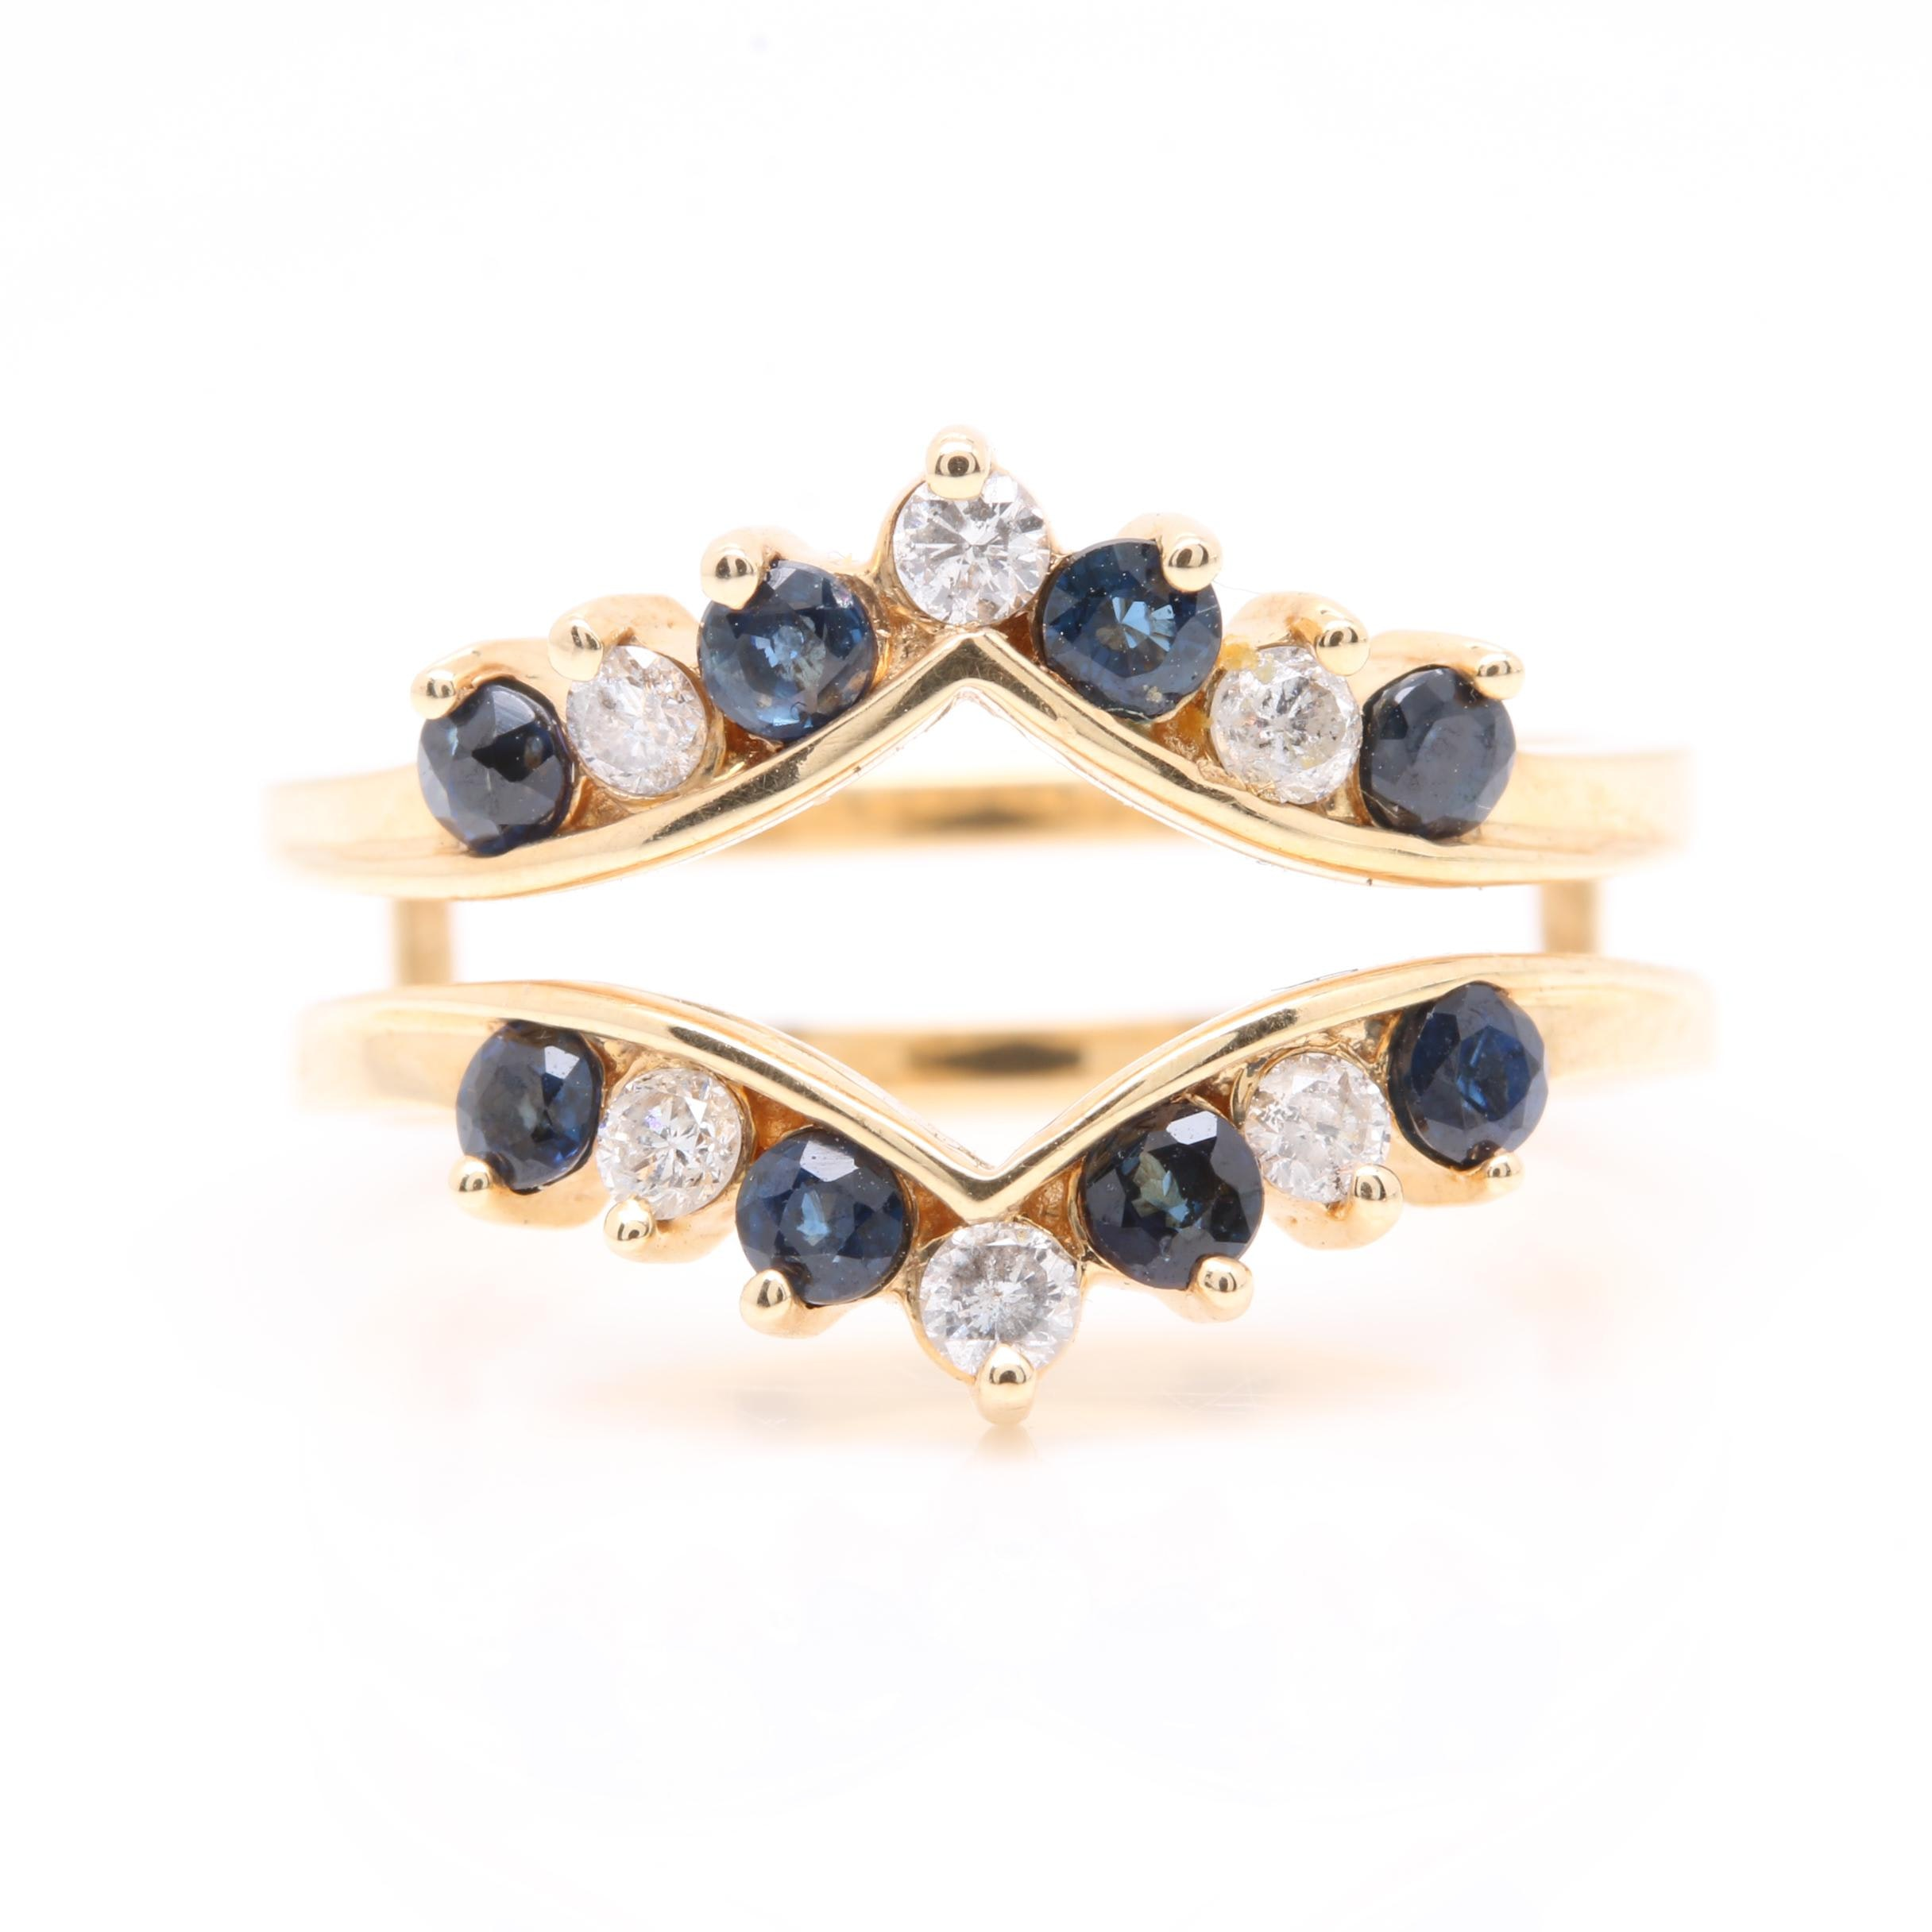 14K Yellow Gold Diamond and Blue Sapphire Ring Guard